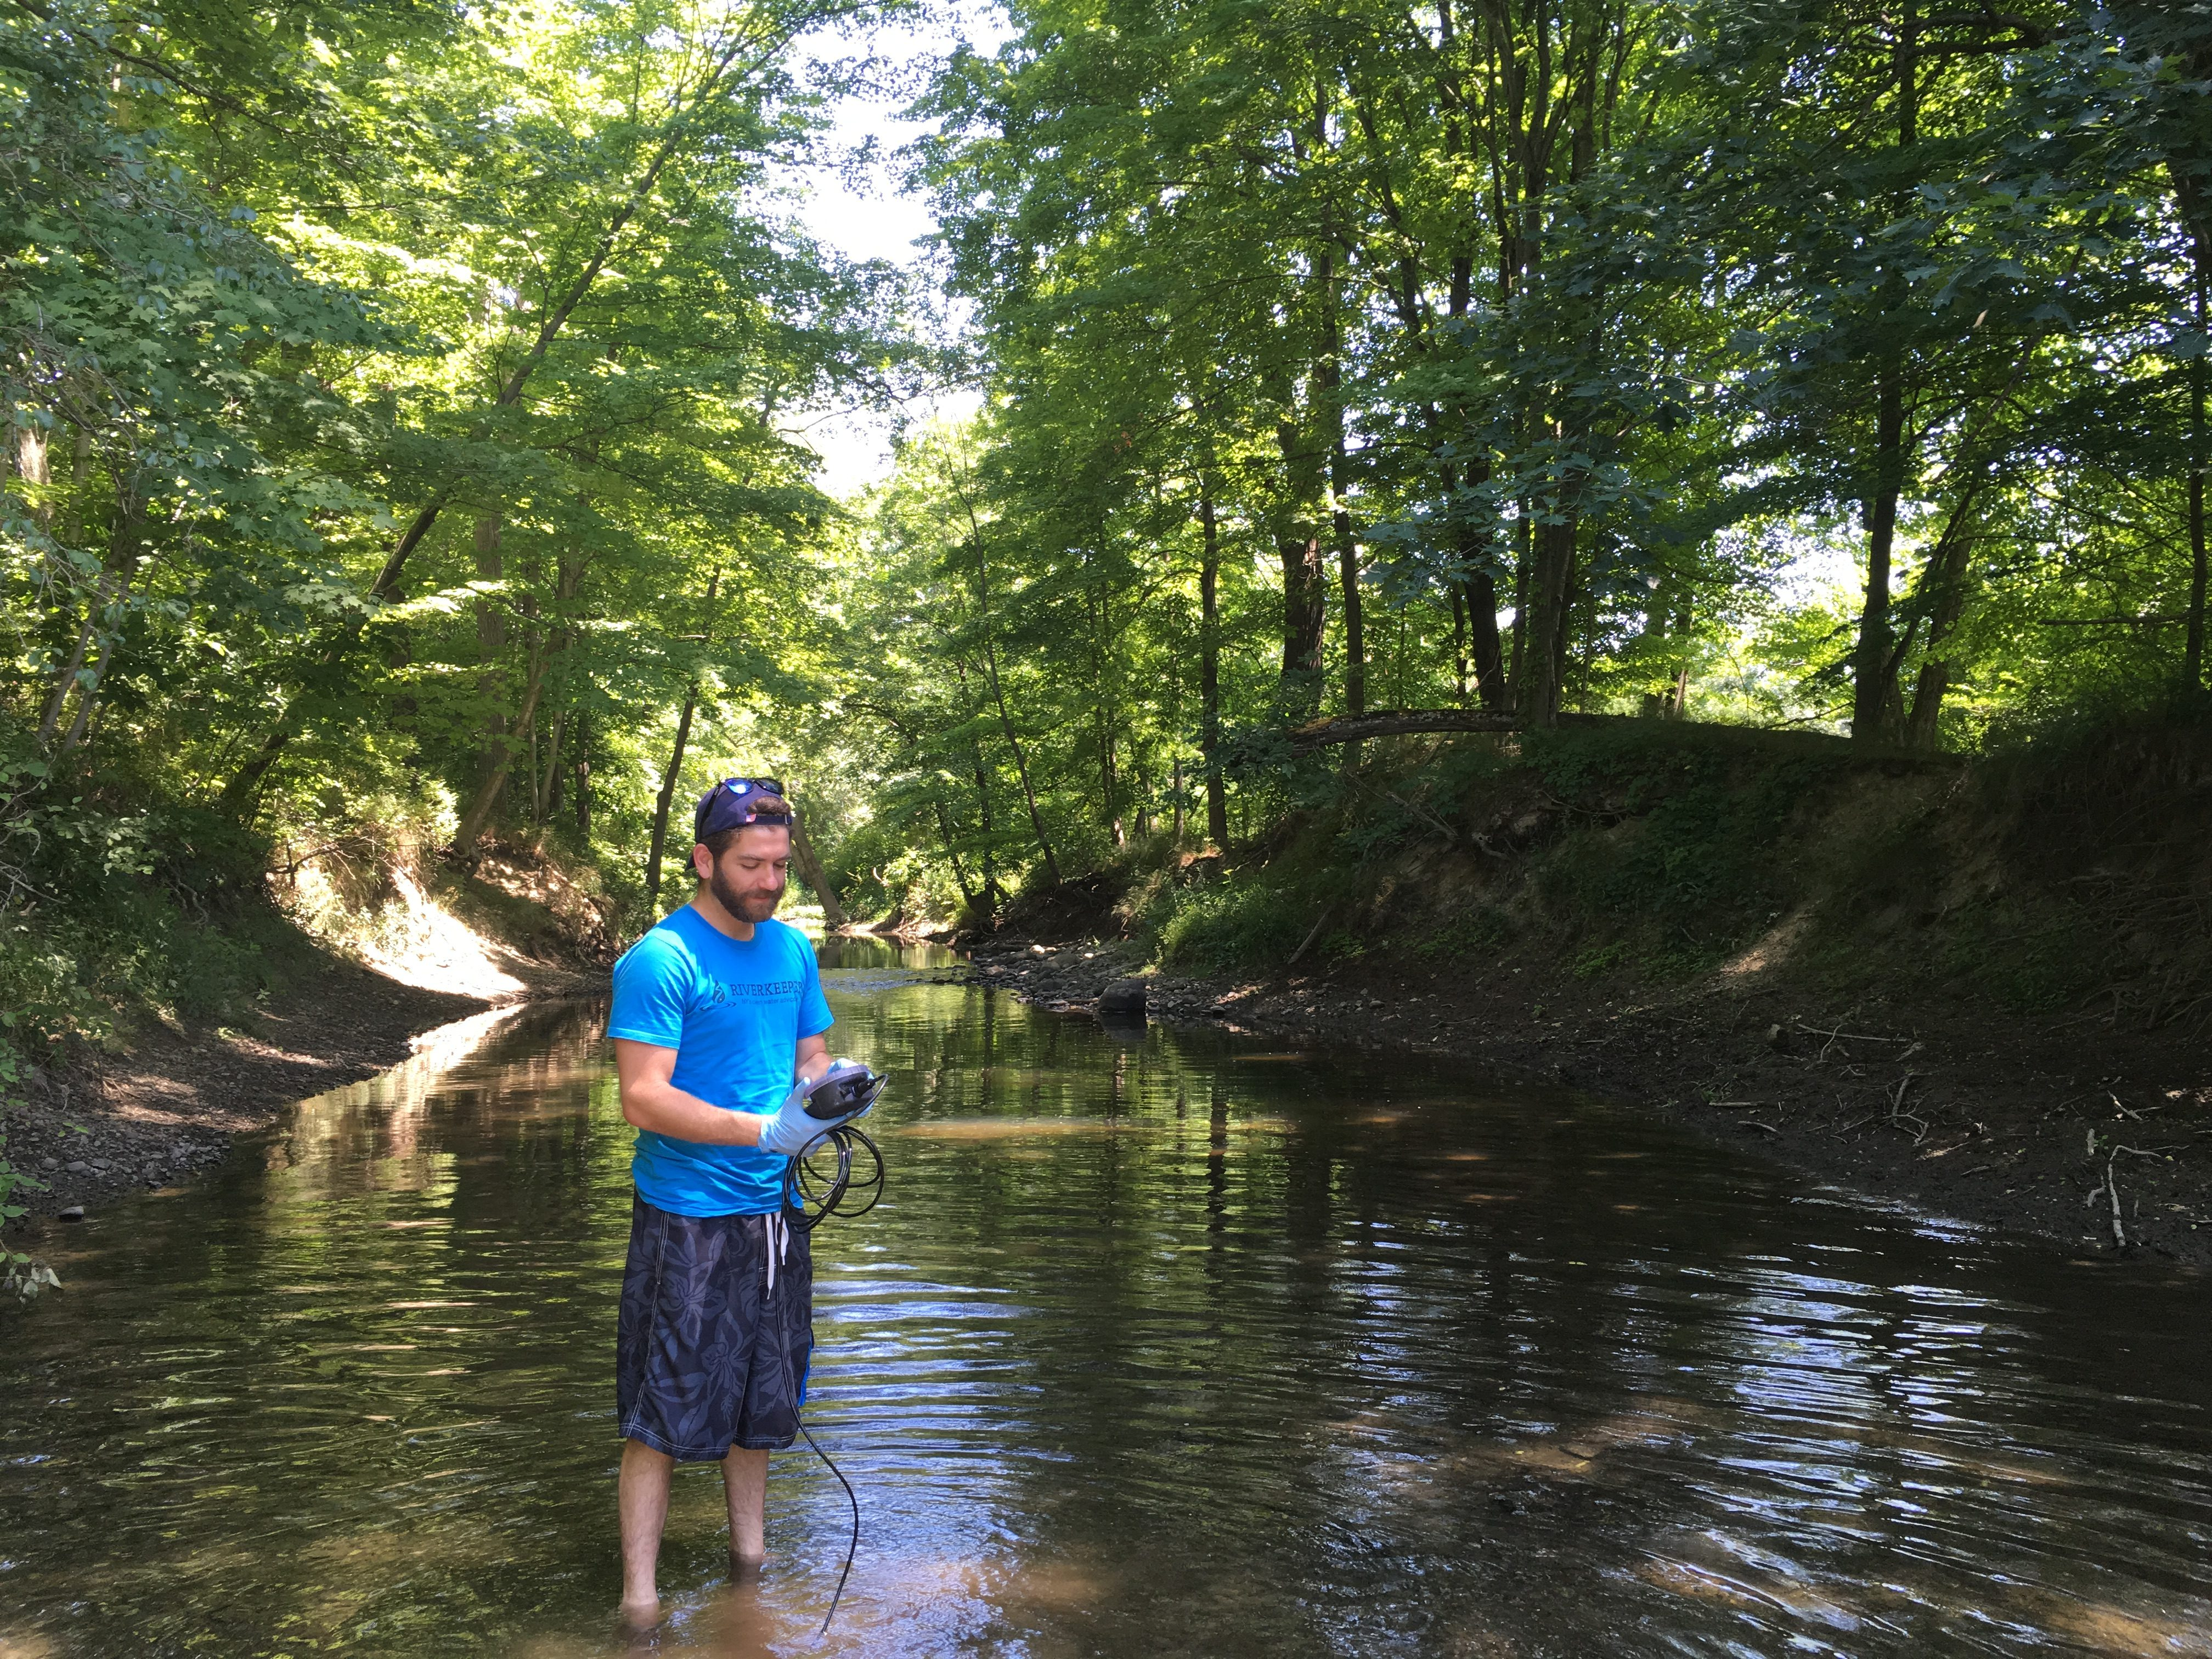 Special sampling in the Wallkill River Watershed - Riverkeeper